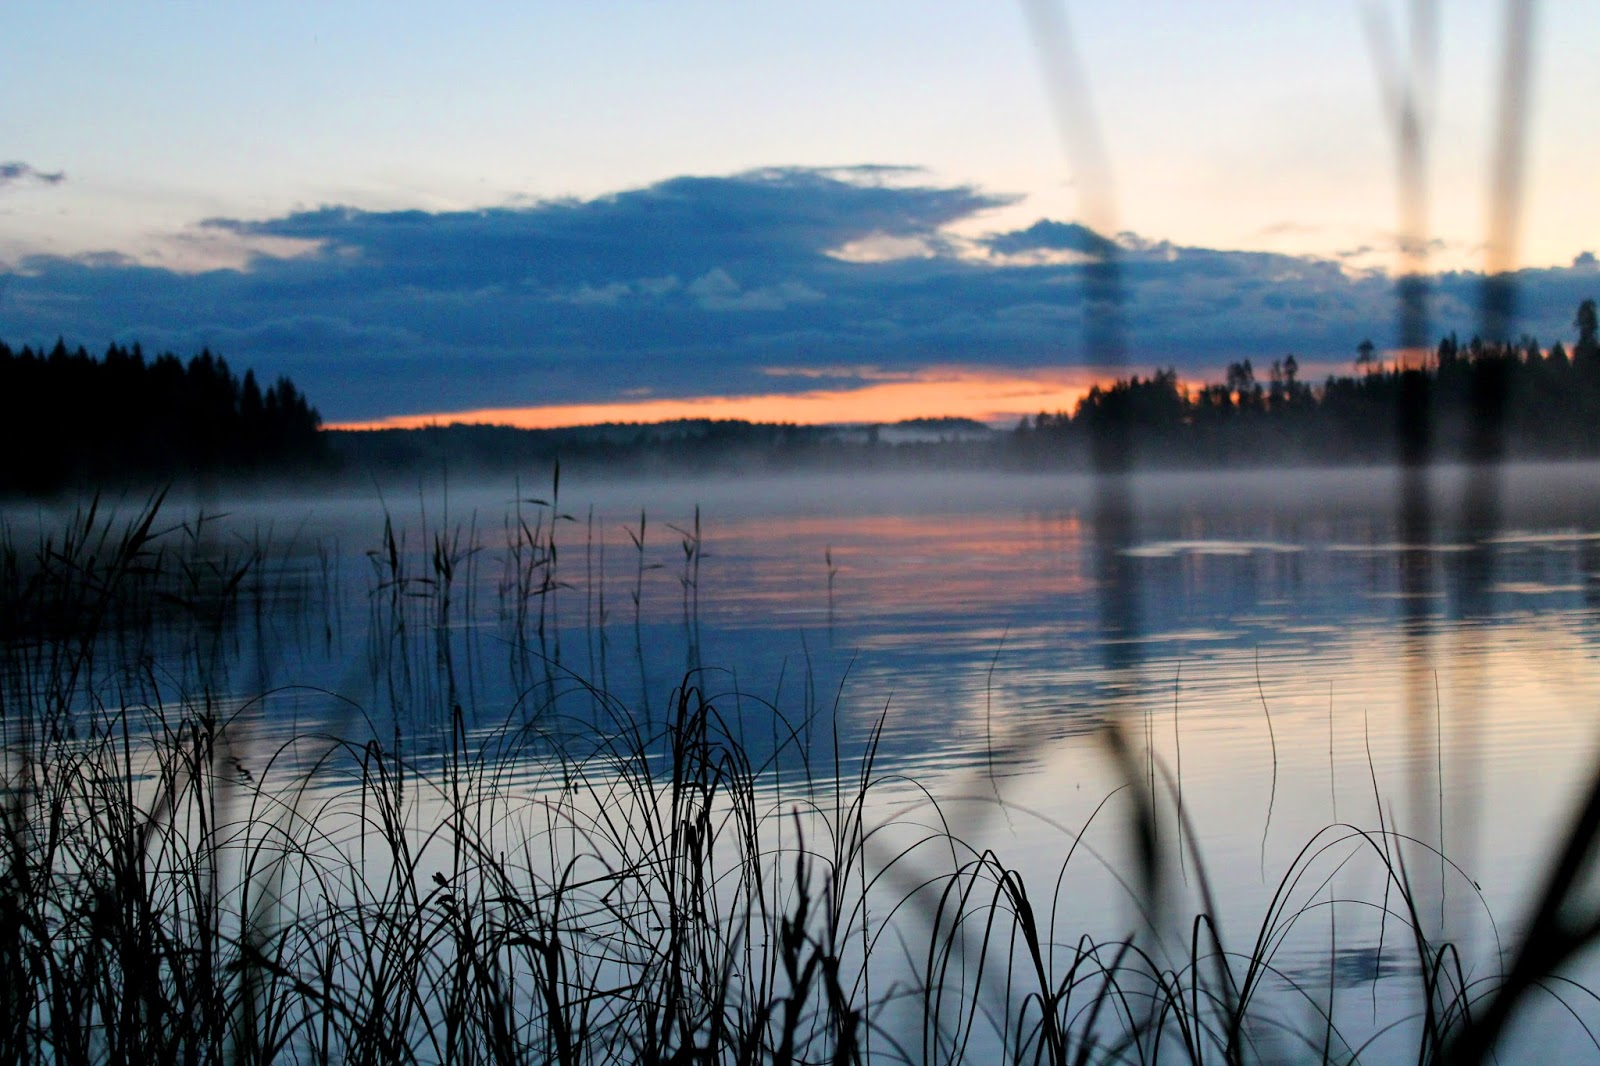 #fog #foggy #lake #saimaa #sea #finland #suomi #forest #clouds #landskape #evening #sunset #sunrise #morning #twilight #east #west